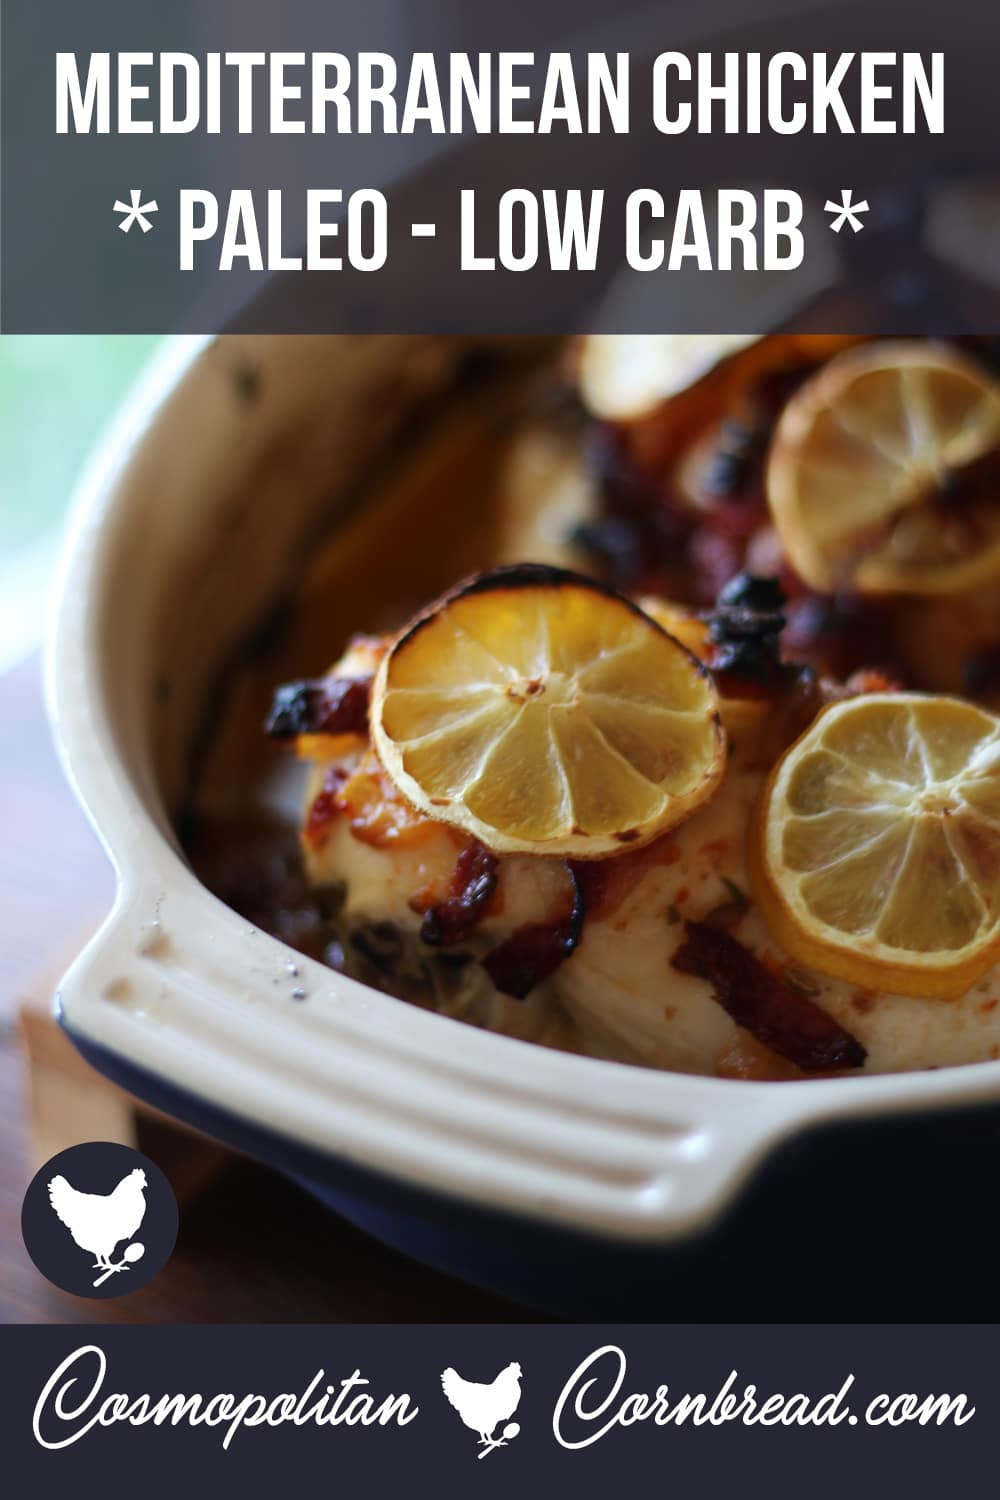 This Paleo Mediterranean Chicken with sun-dried tomatoes and fresh herbs is filled with amazing flavor.